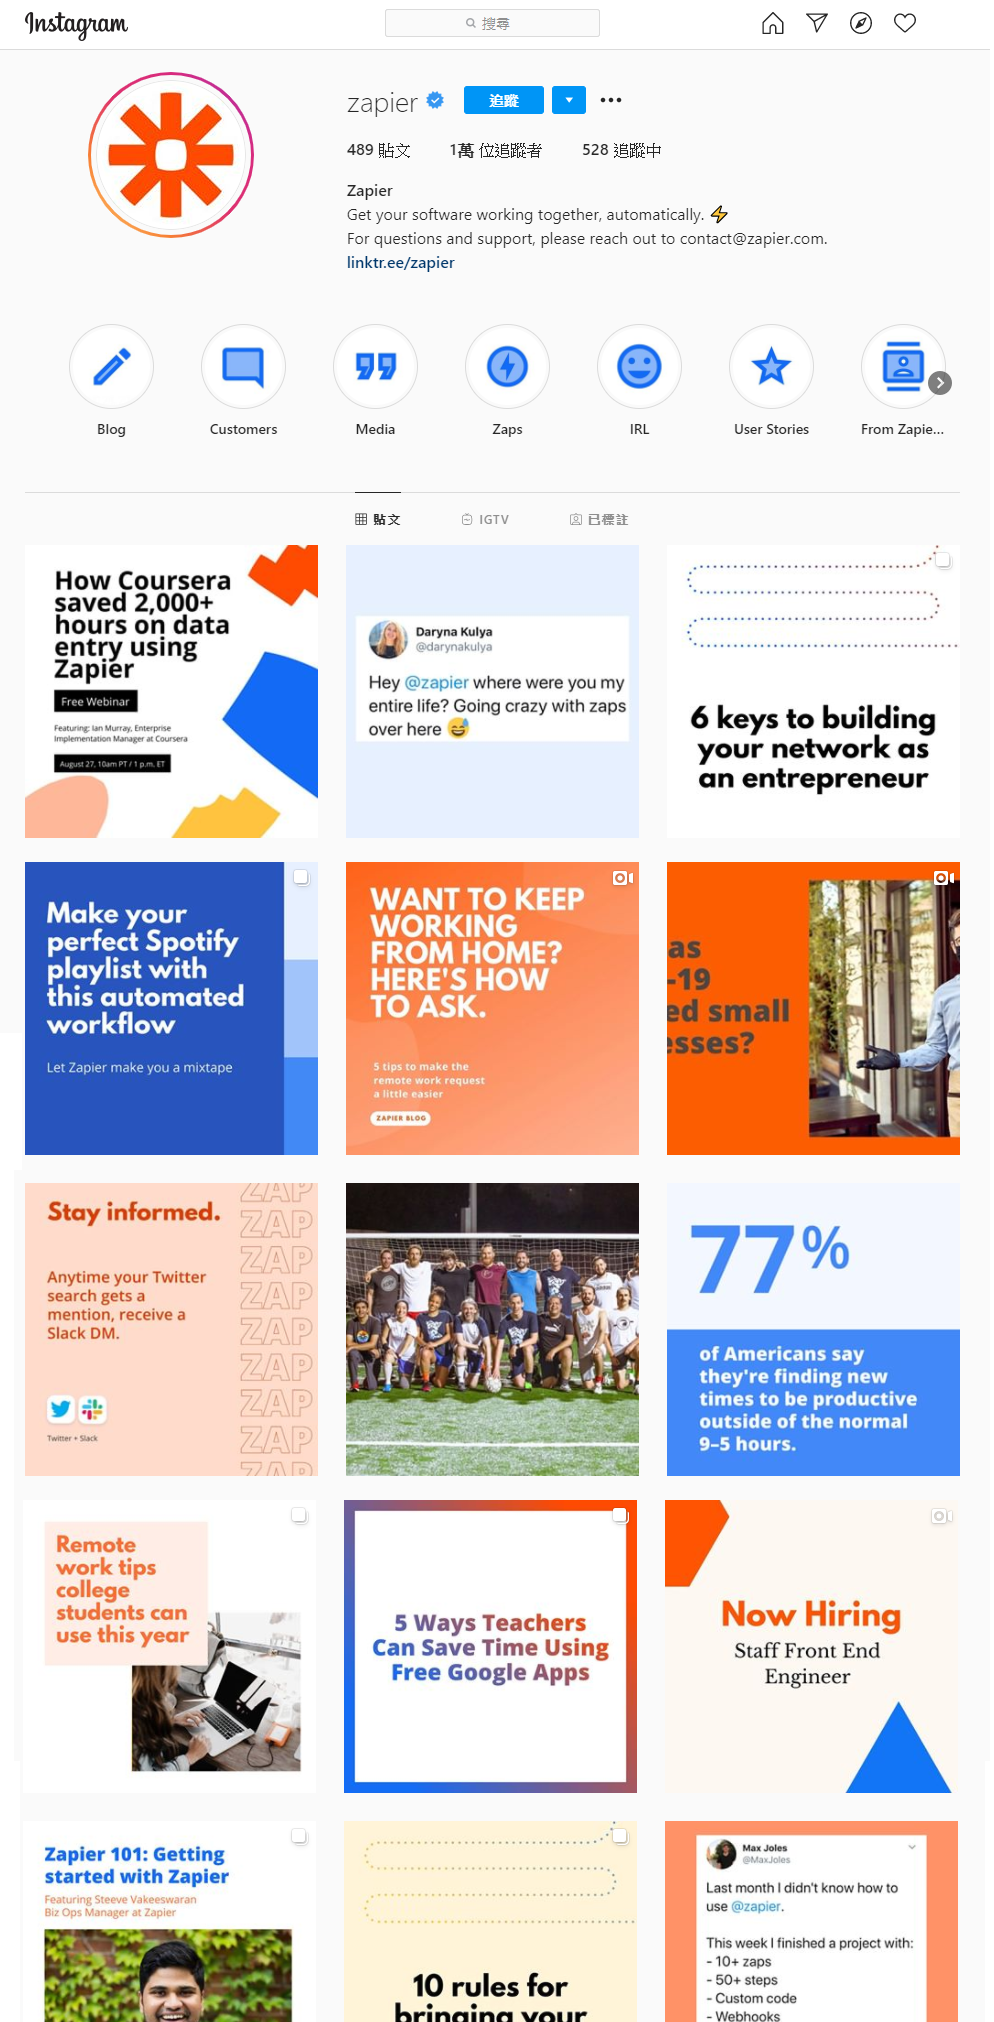 SaaS Company's 1st Step to Content Marketing - Instagram